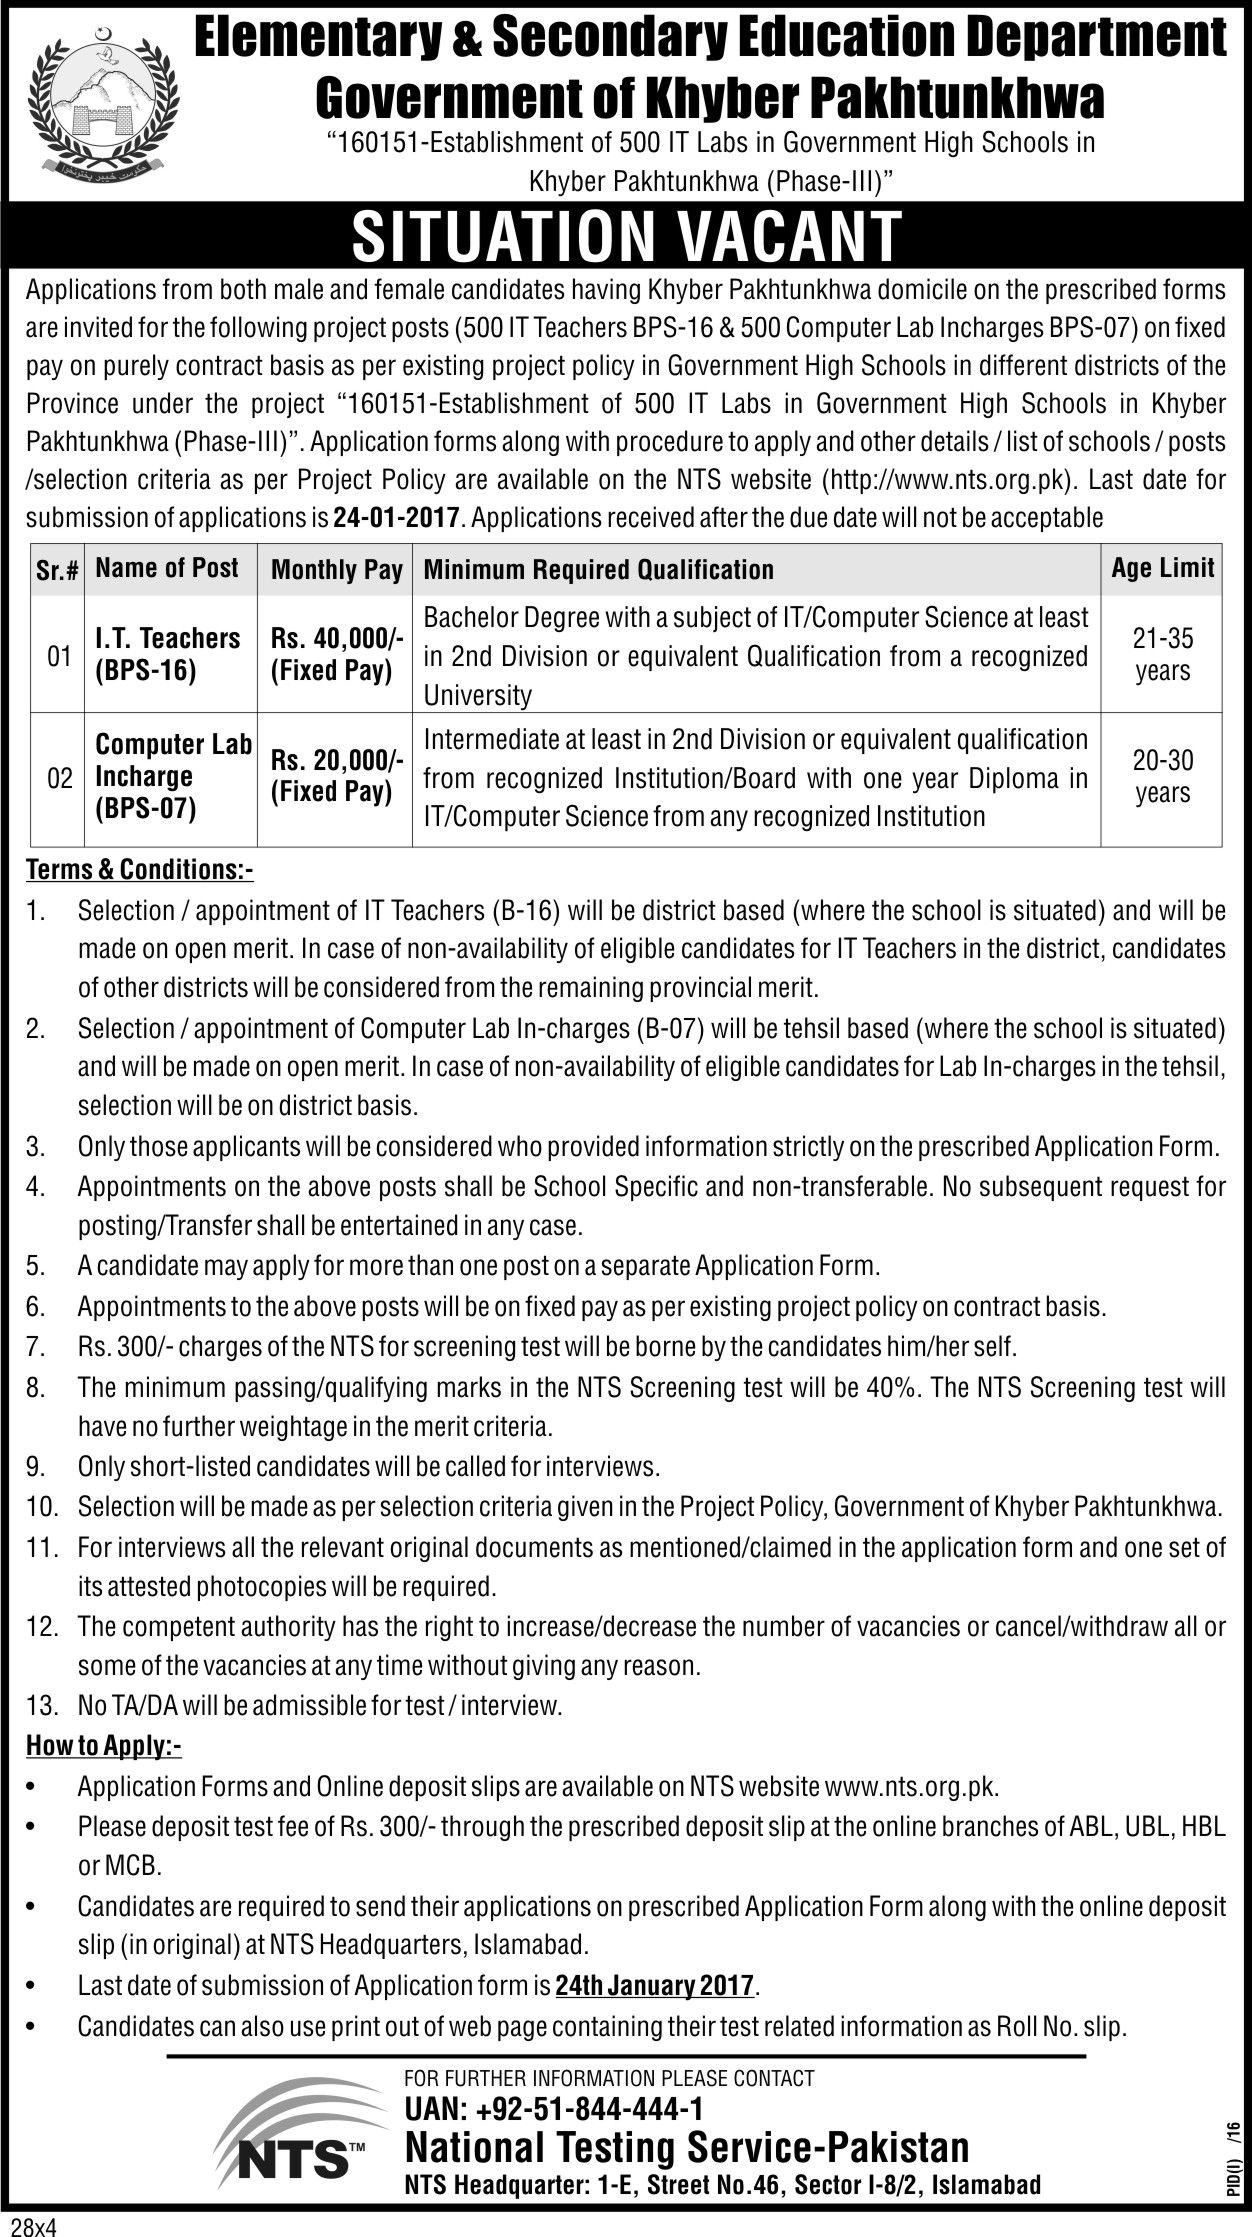 KPK Education Department IT Teachers & Computer Lab Incharge Jobs NTS Application Form